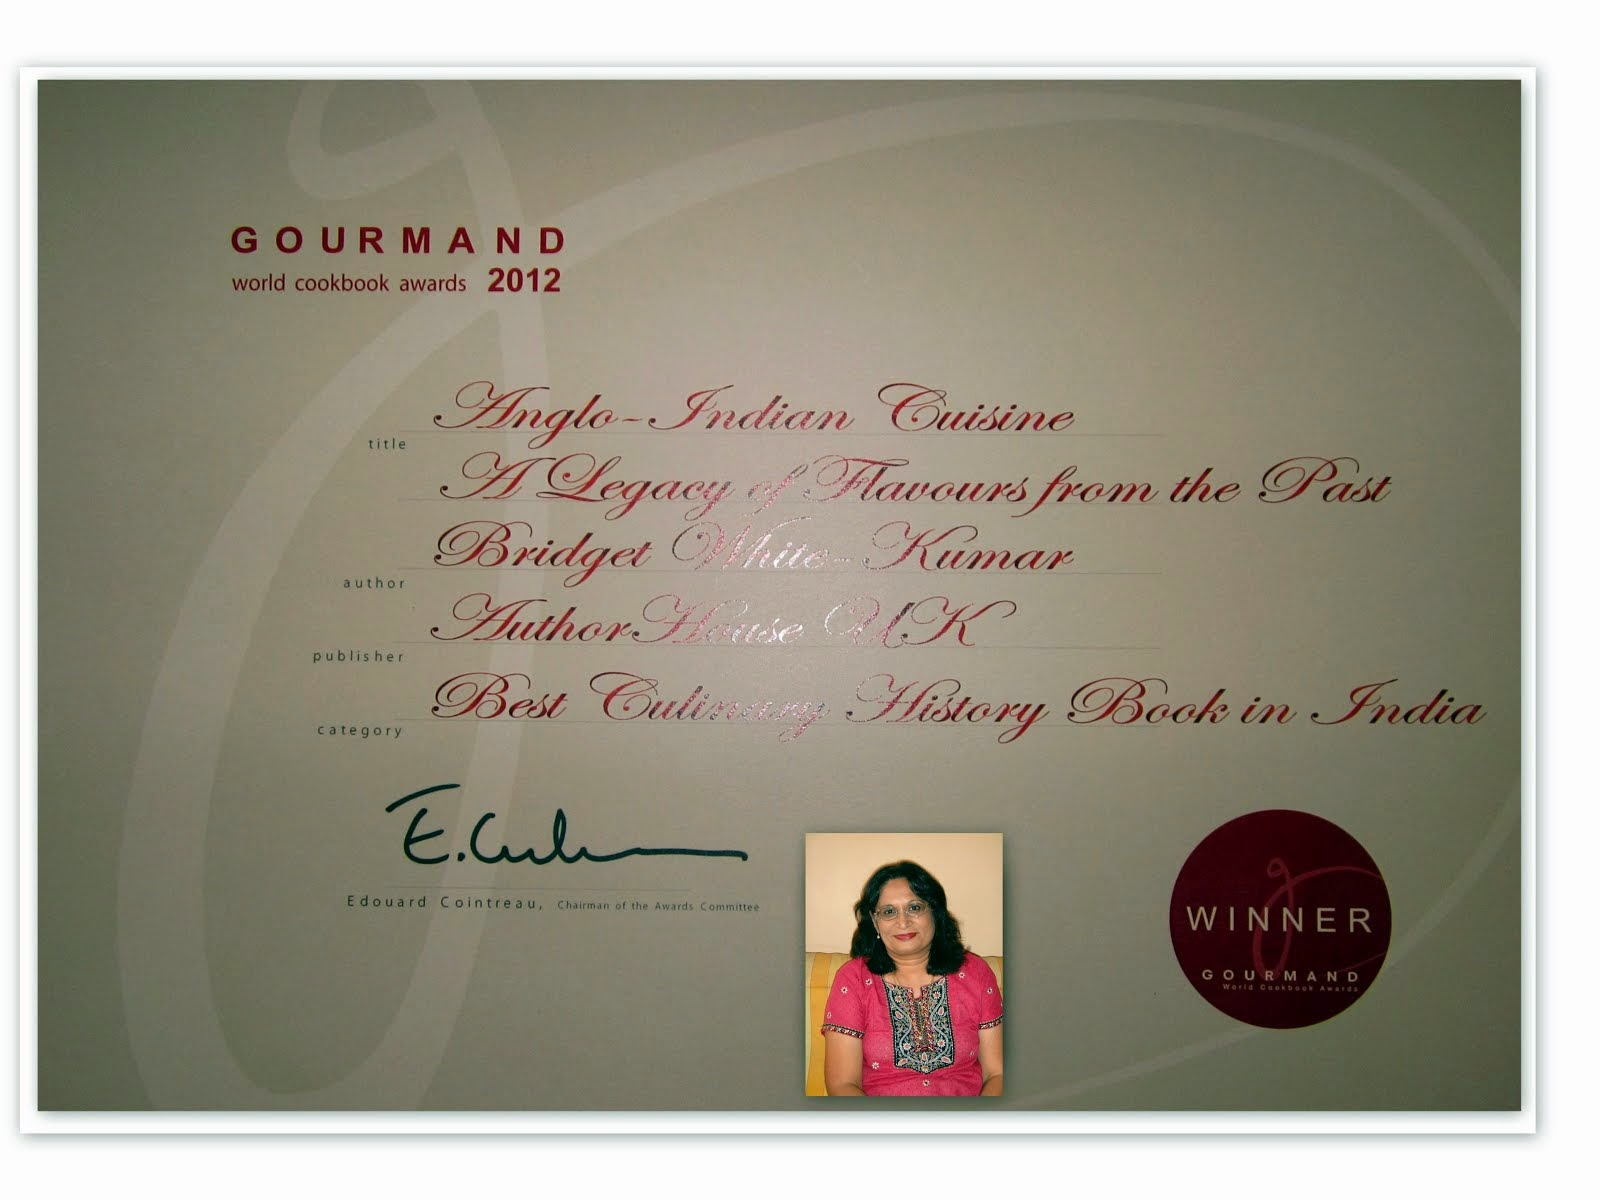 Certificate from GOURMAND WORLD COOK BOOK AWARDS 2012